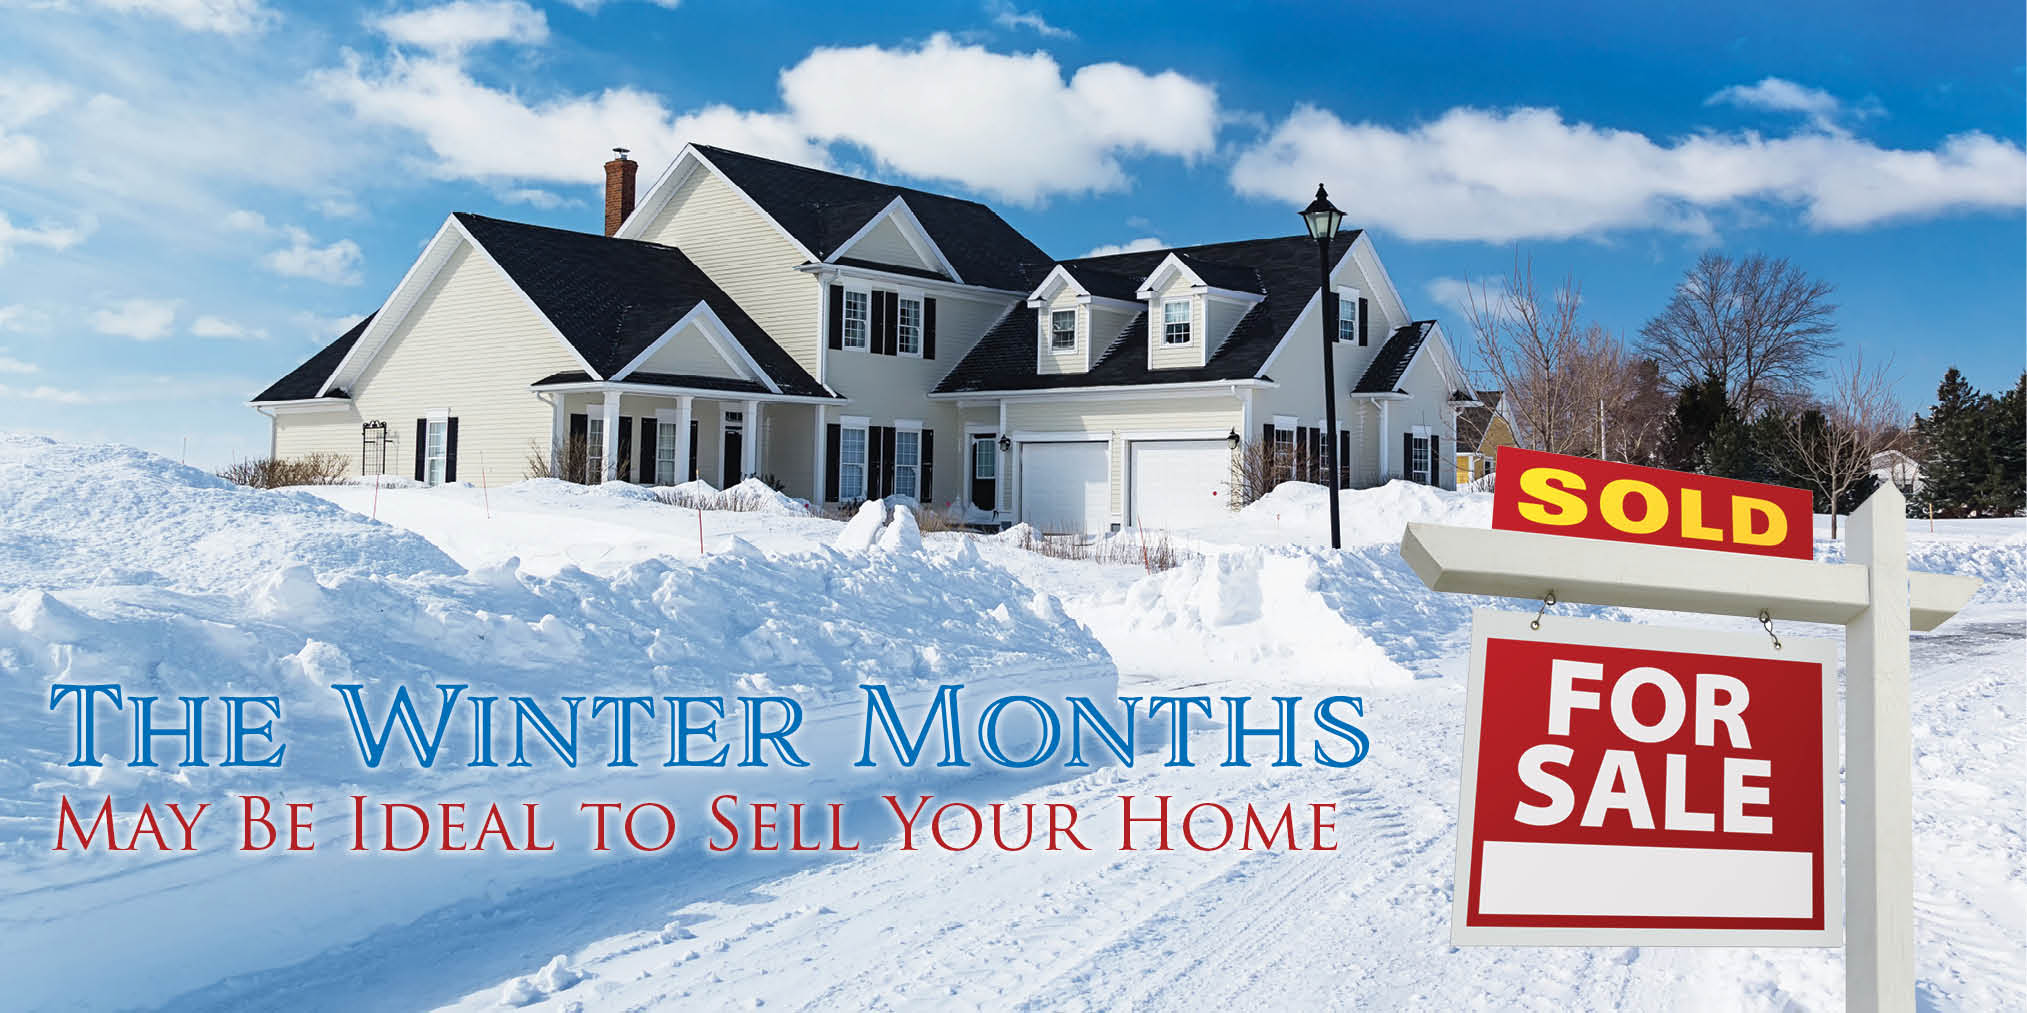 The Winter Months May Be Ideal to Sell Your Home